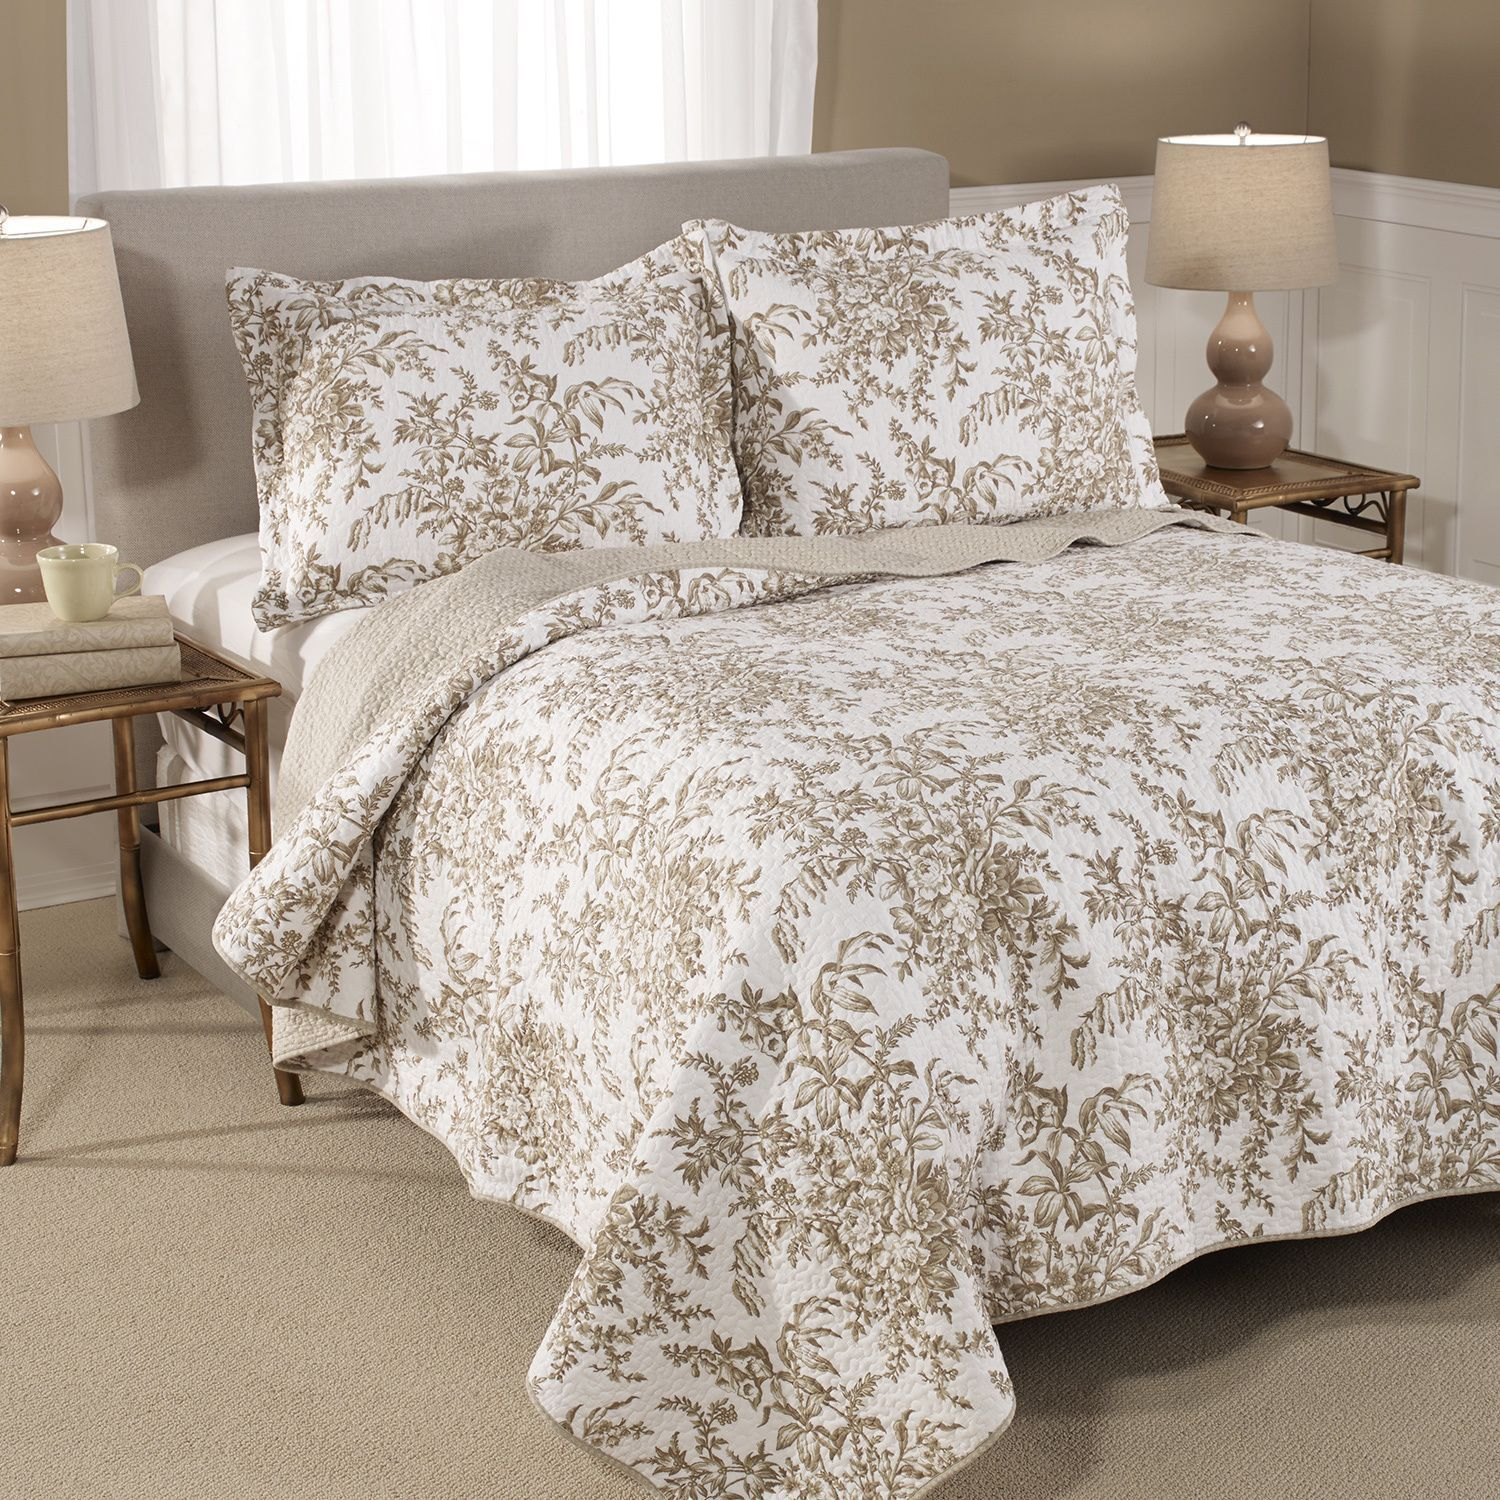 Dress your bed in elegance with the